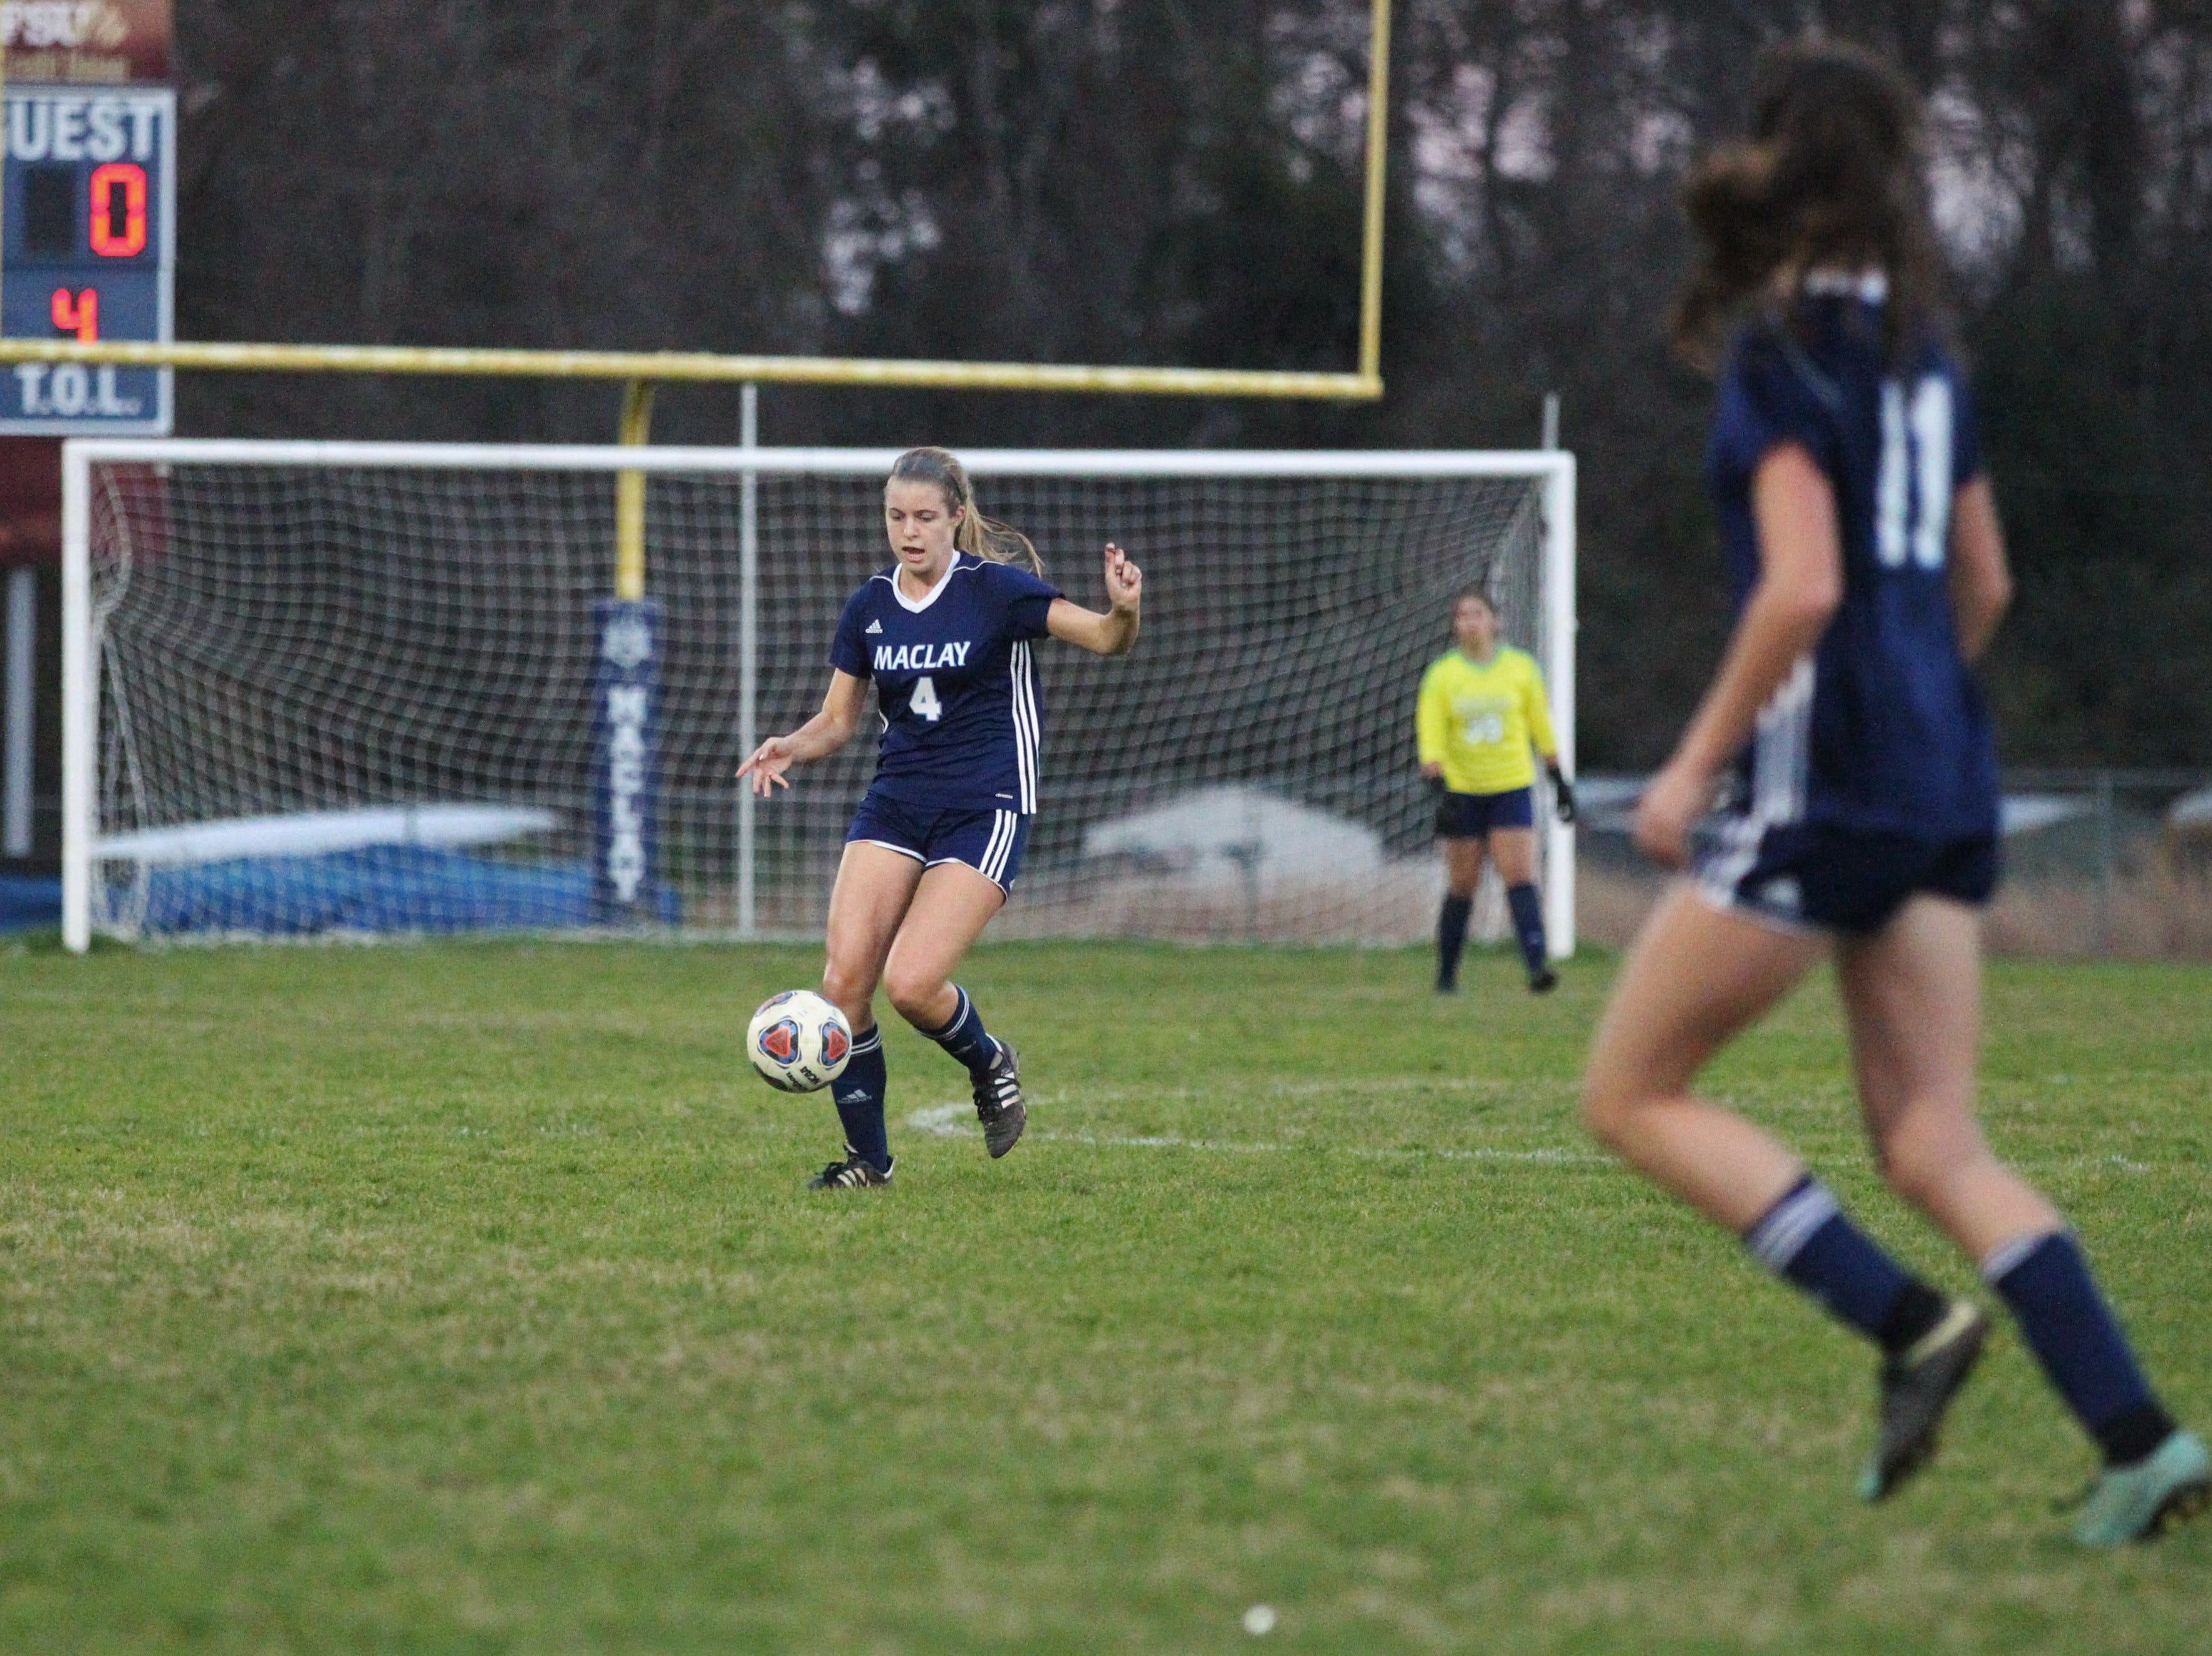 Maclay's Ramsay Grant gains possession as Maclay's girls soccer team beat St. Joseph Academy 4-0 in a Region 1-1A quarterfinal on Jan. 5, 2019.